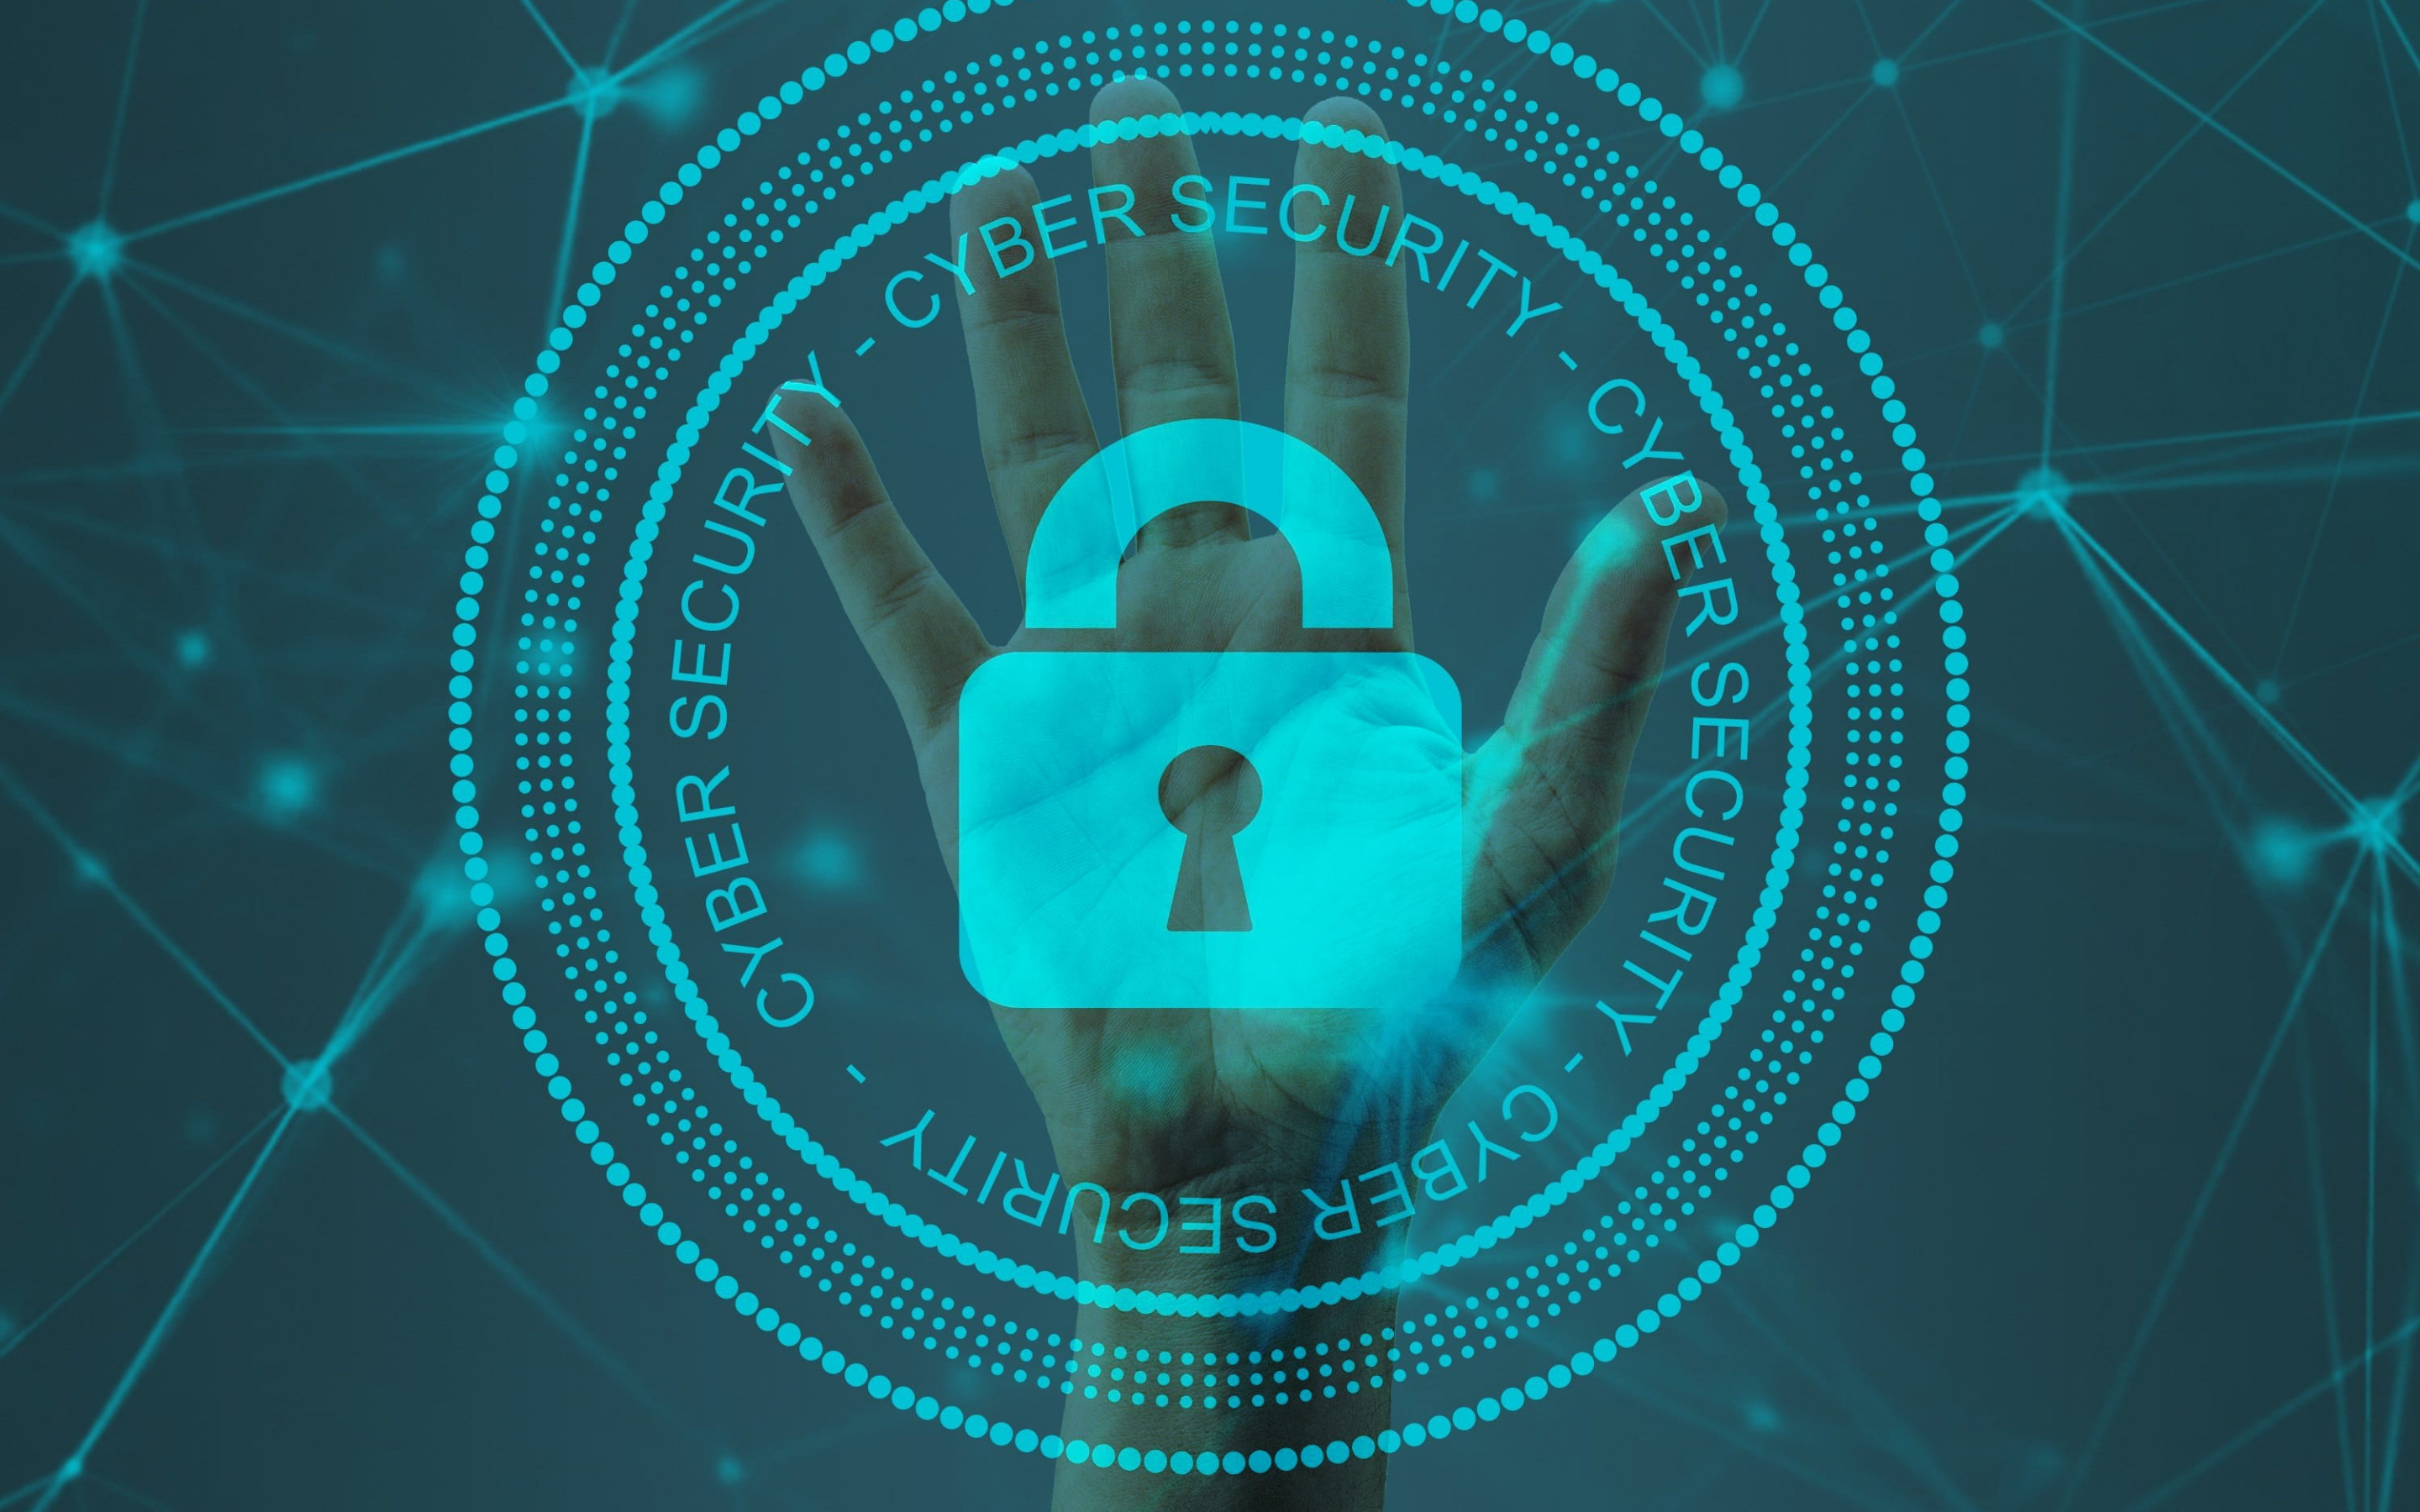 Cyber Security and Network Operations Certificate (CG)